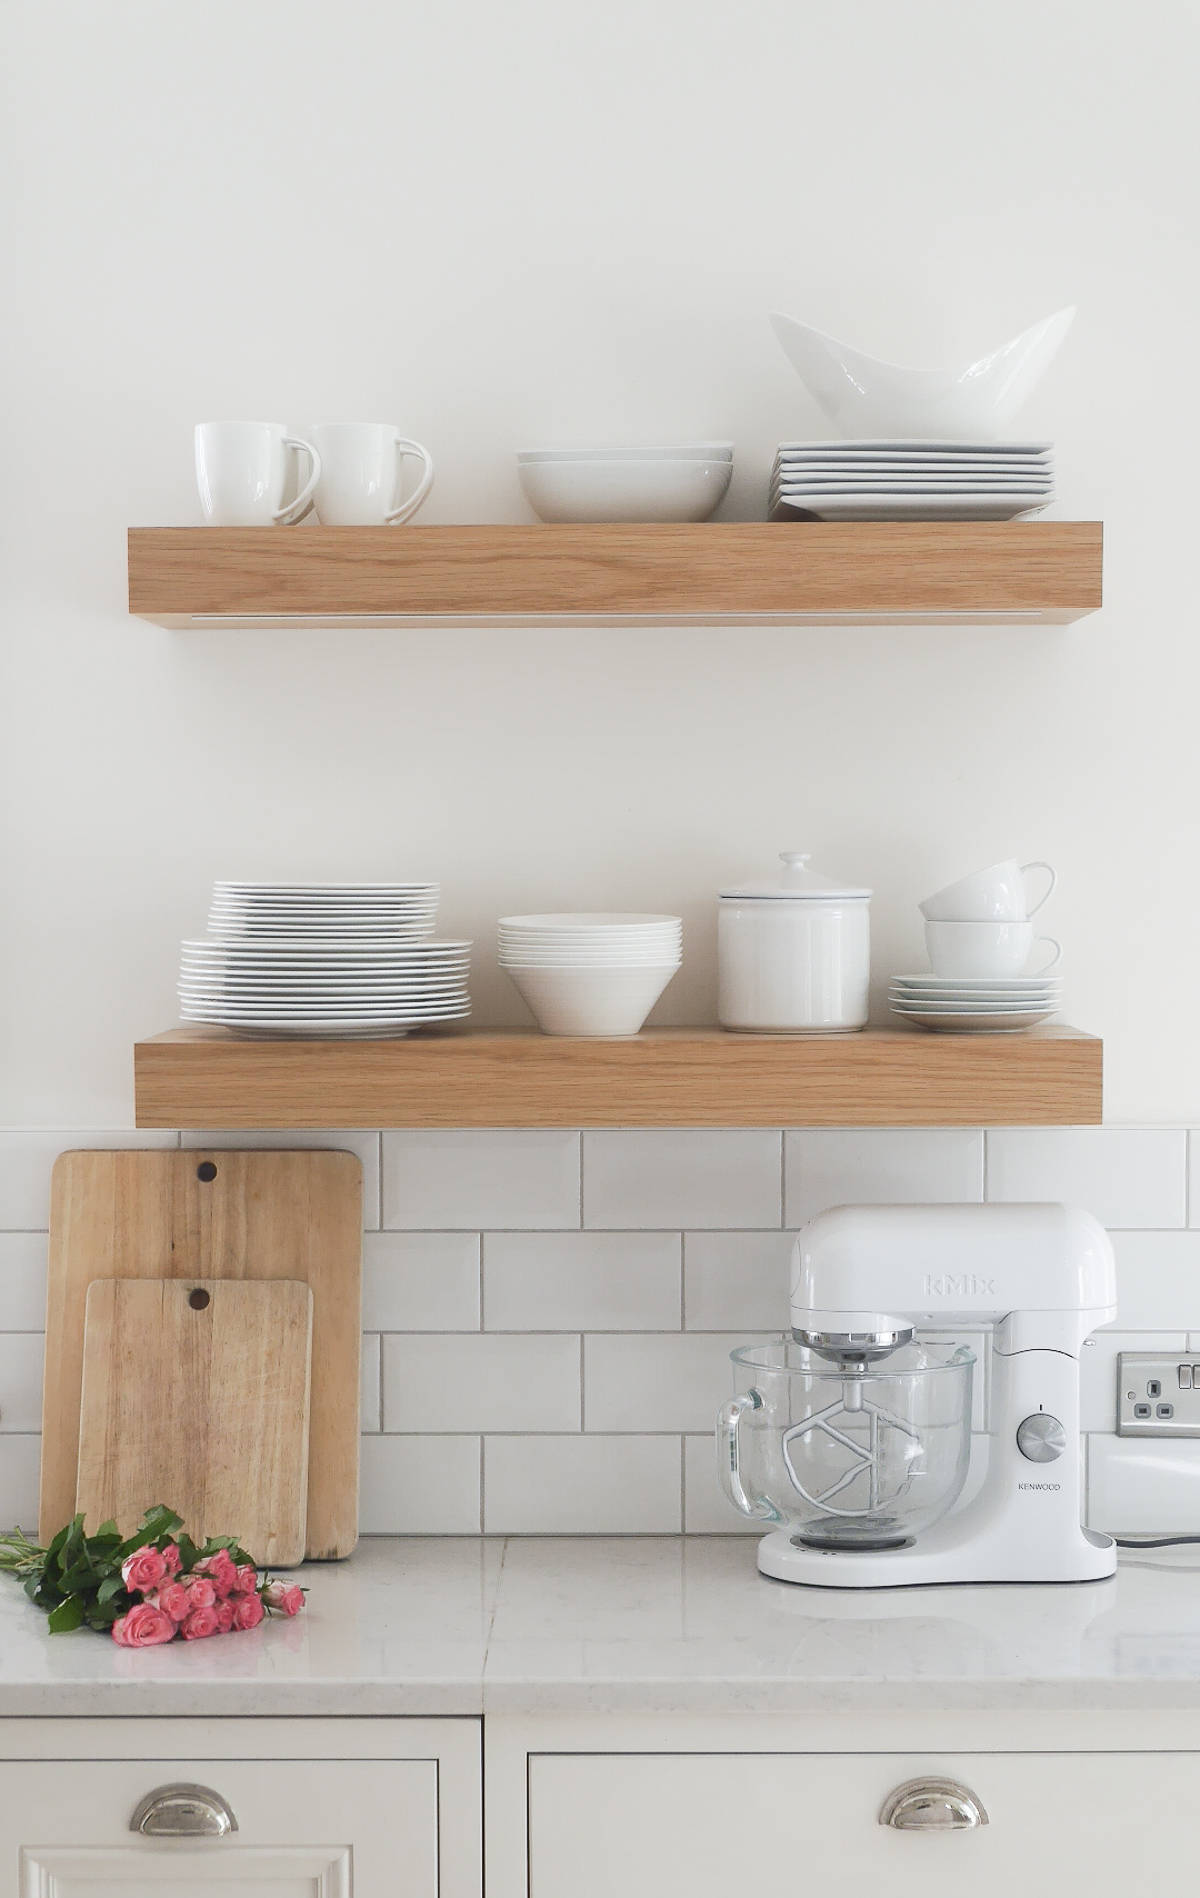 3 ways to style open kitchen shelves the green eyed girl Open shelving